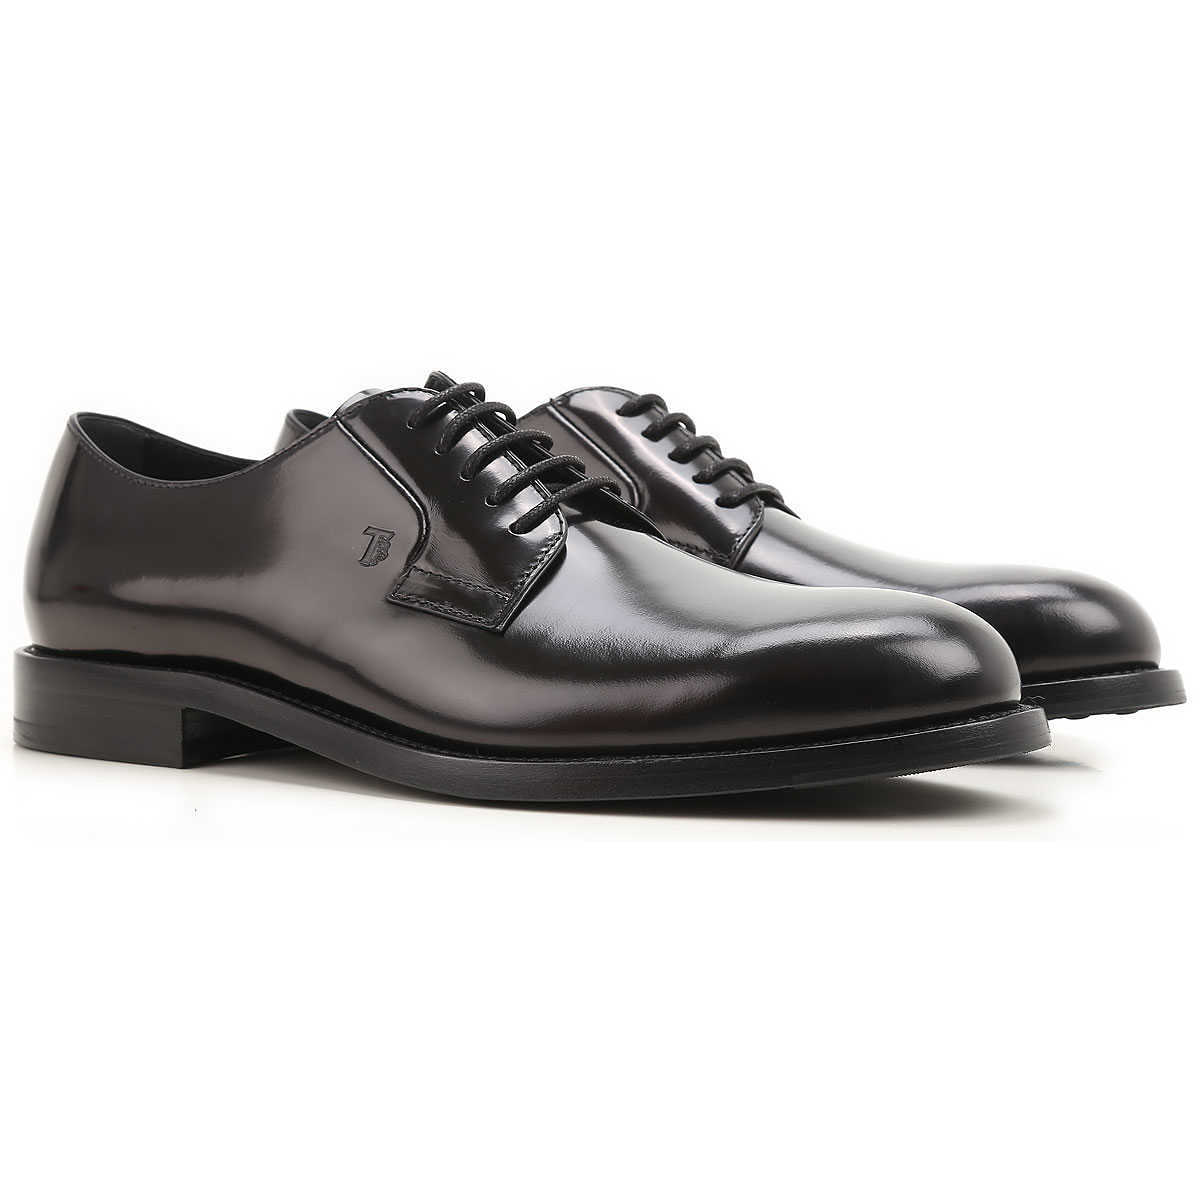 Tods Lace Up Shoes for Men Oxfords 10 10.5 11 5 6 6.5 7.5 8 8.5 9 9.5 Derbies and Brogues On Sale in Outlet UK - GOOFASH